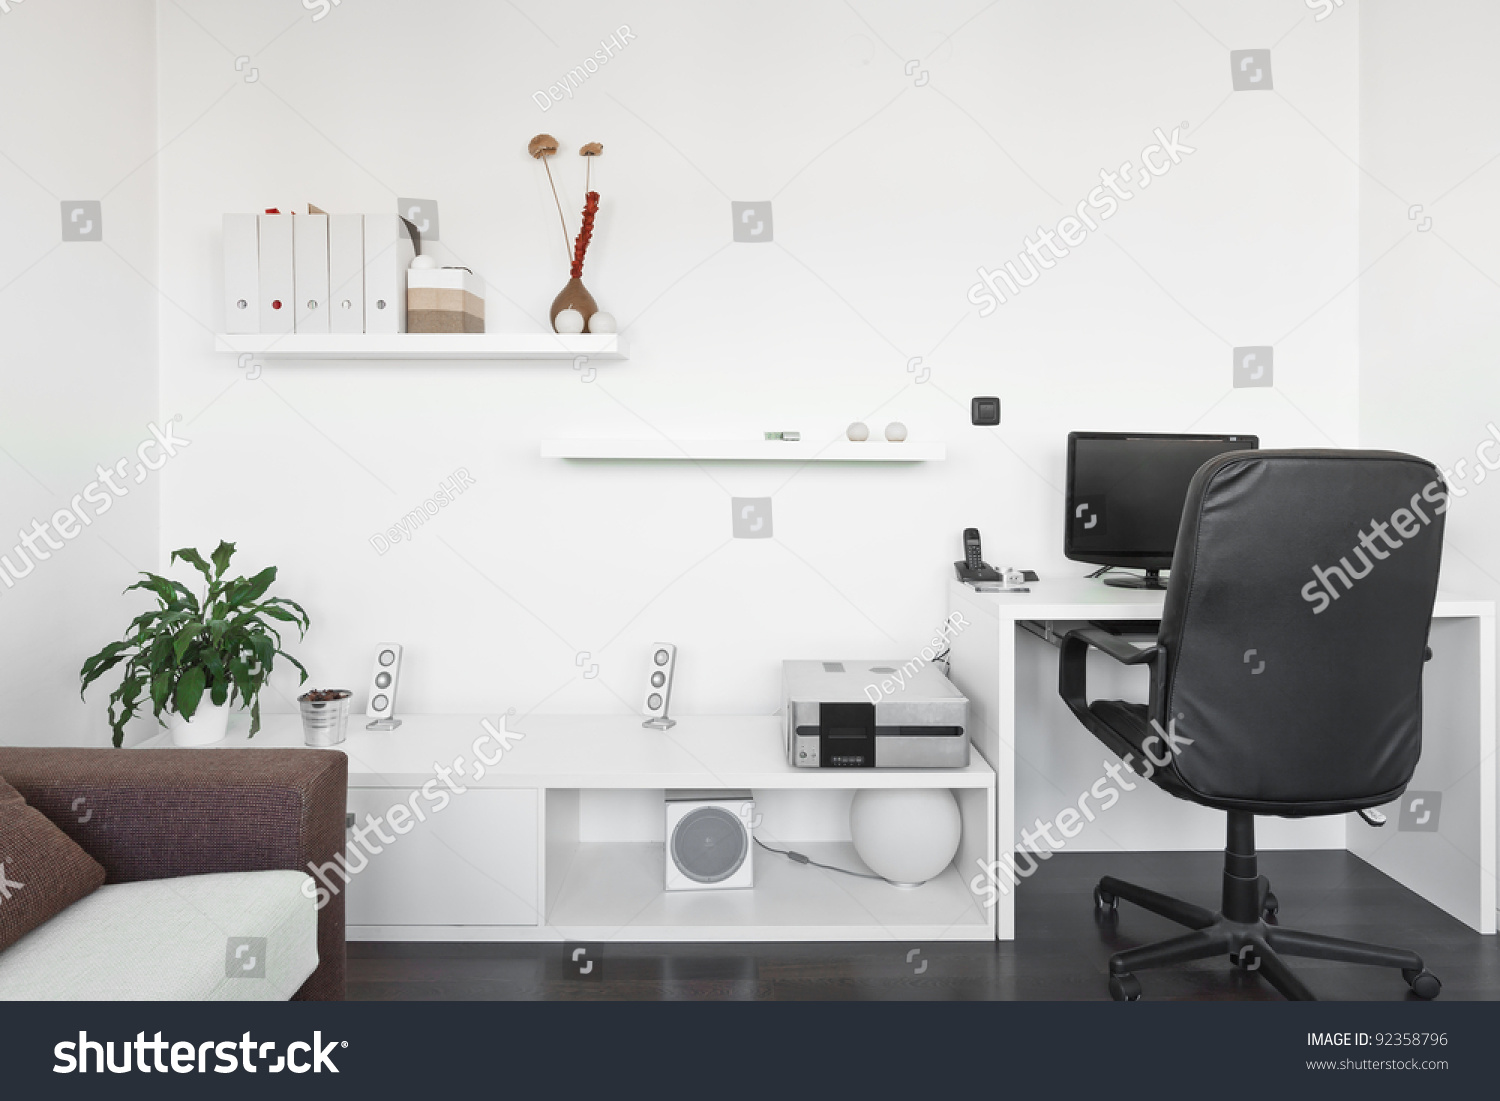 Fantastic Modern Living Room Computer Desk Screen Stock Photo 92358796 Largest Home Design Picture Inspirations Pitcheantrous